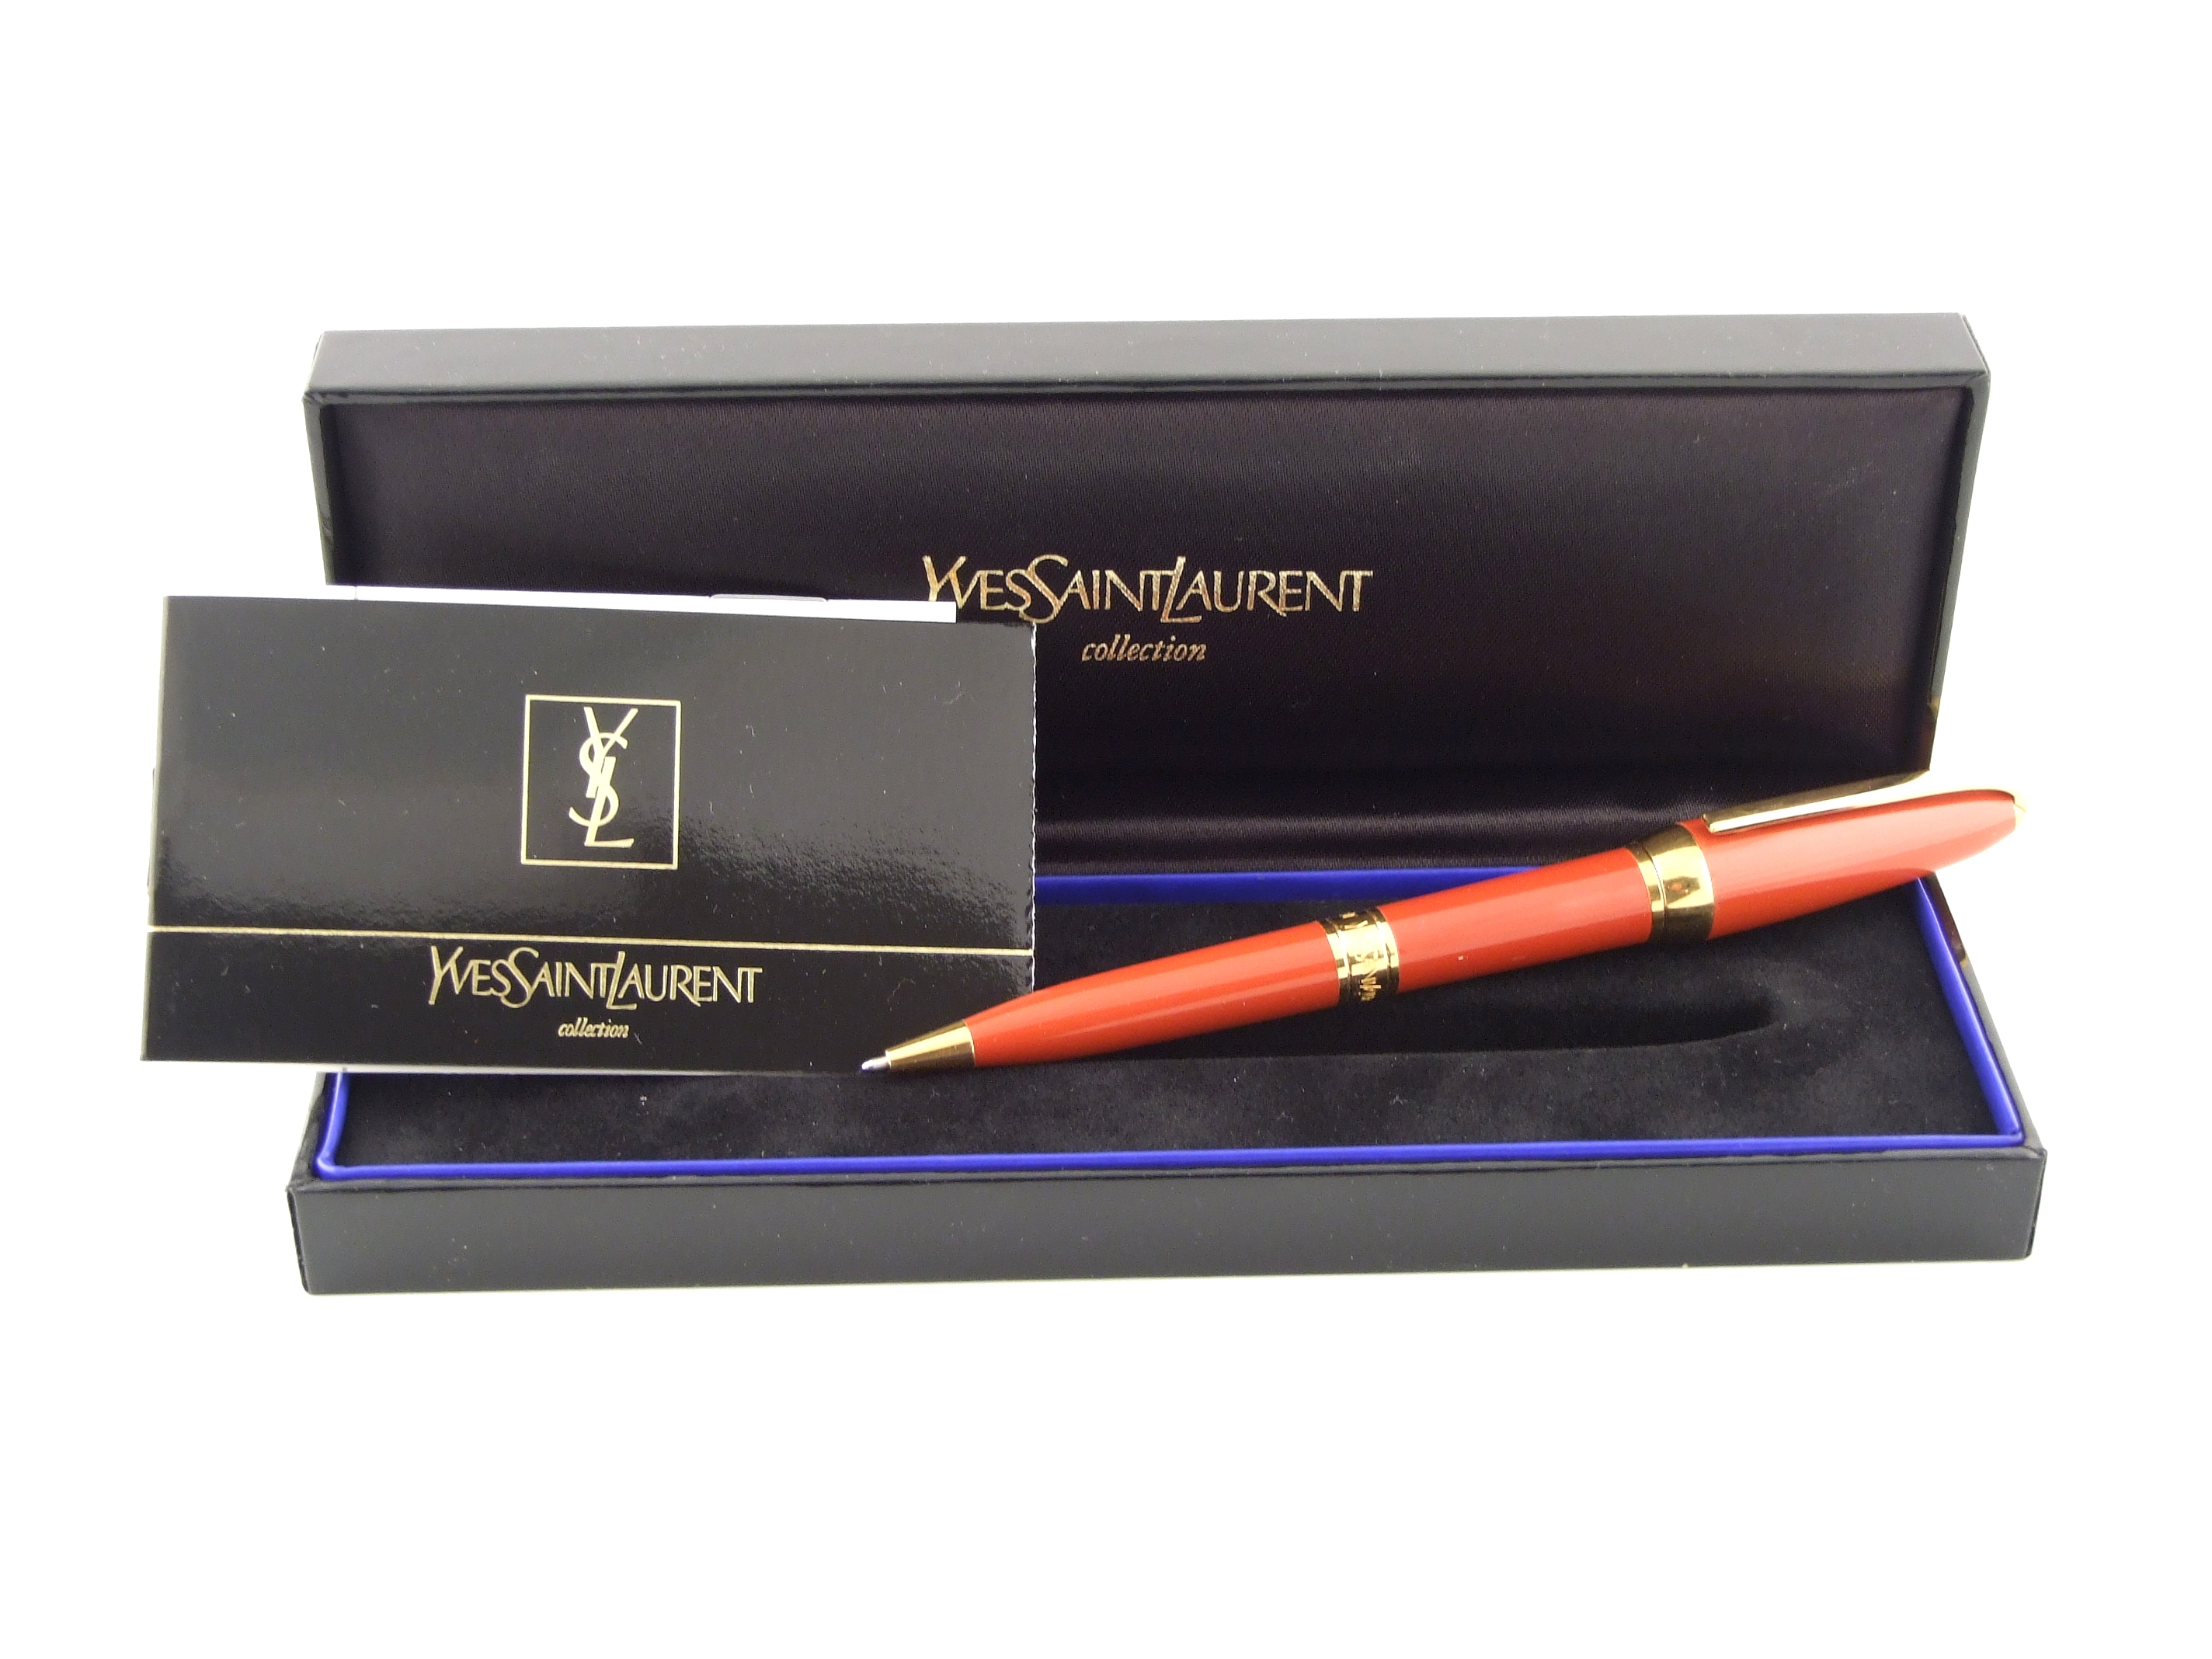 yves saint laurent cabas chyc tote blue - YSL Yves Saint Laurent Ball Point Pen Y1112412 | eBay